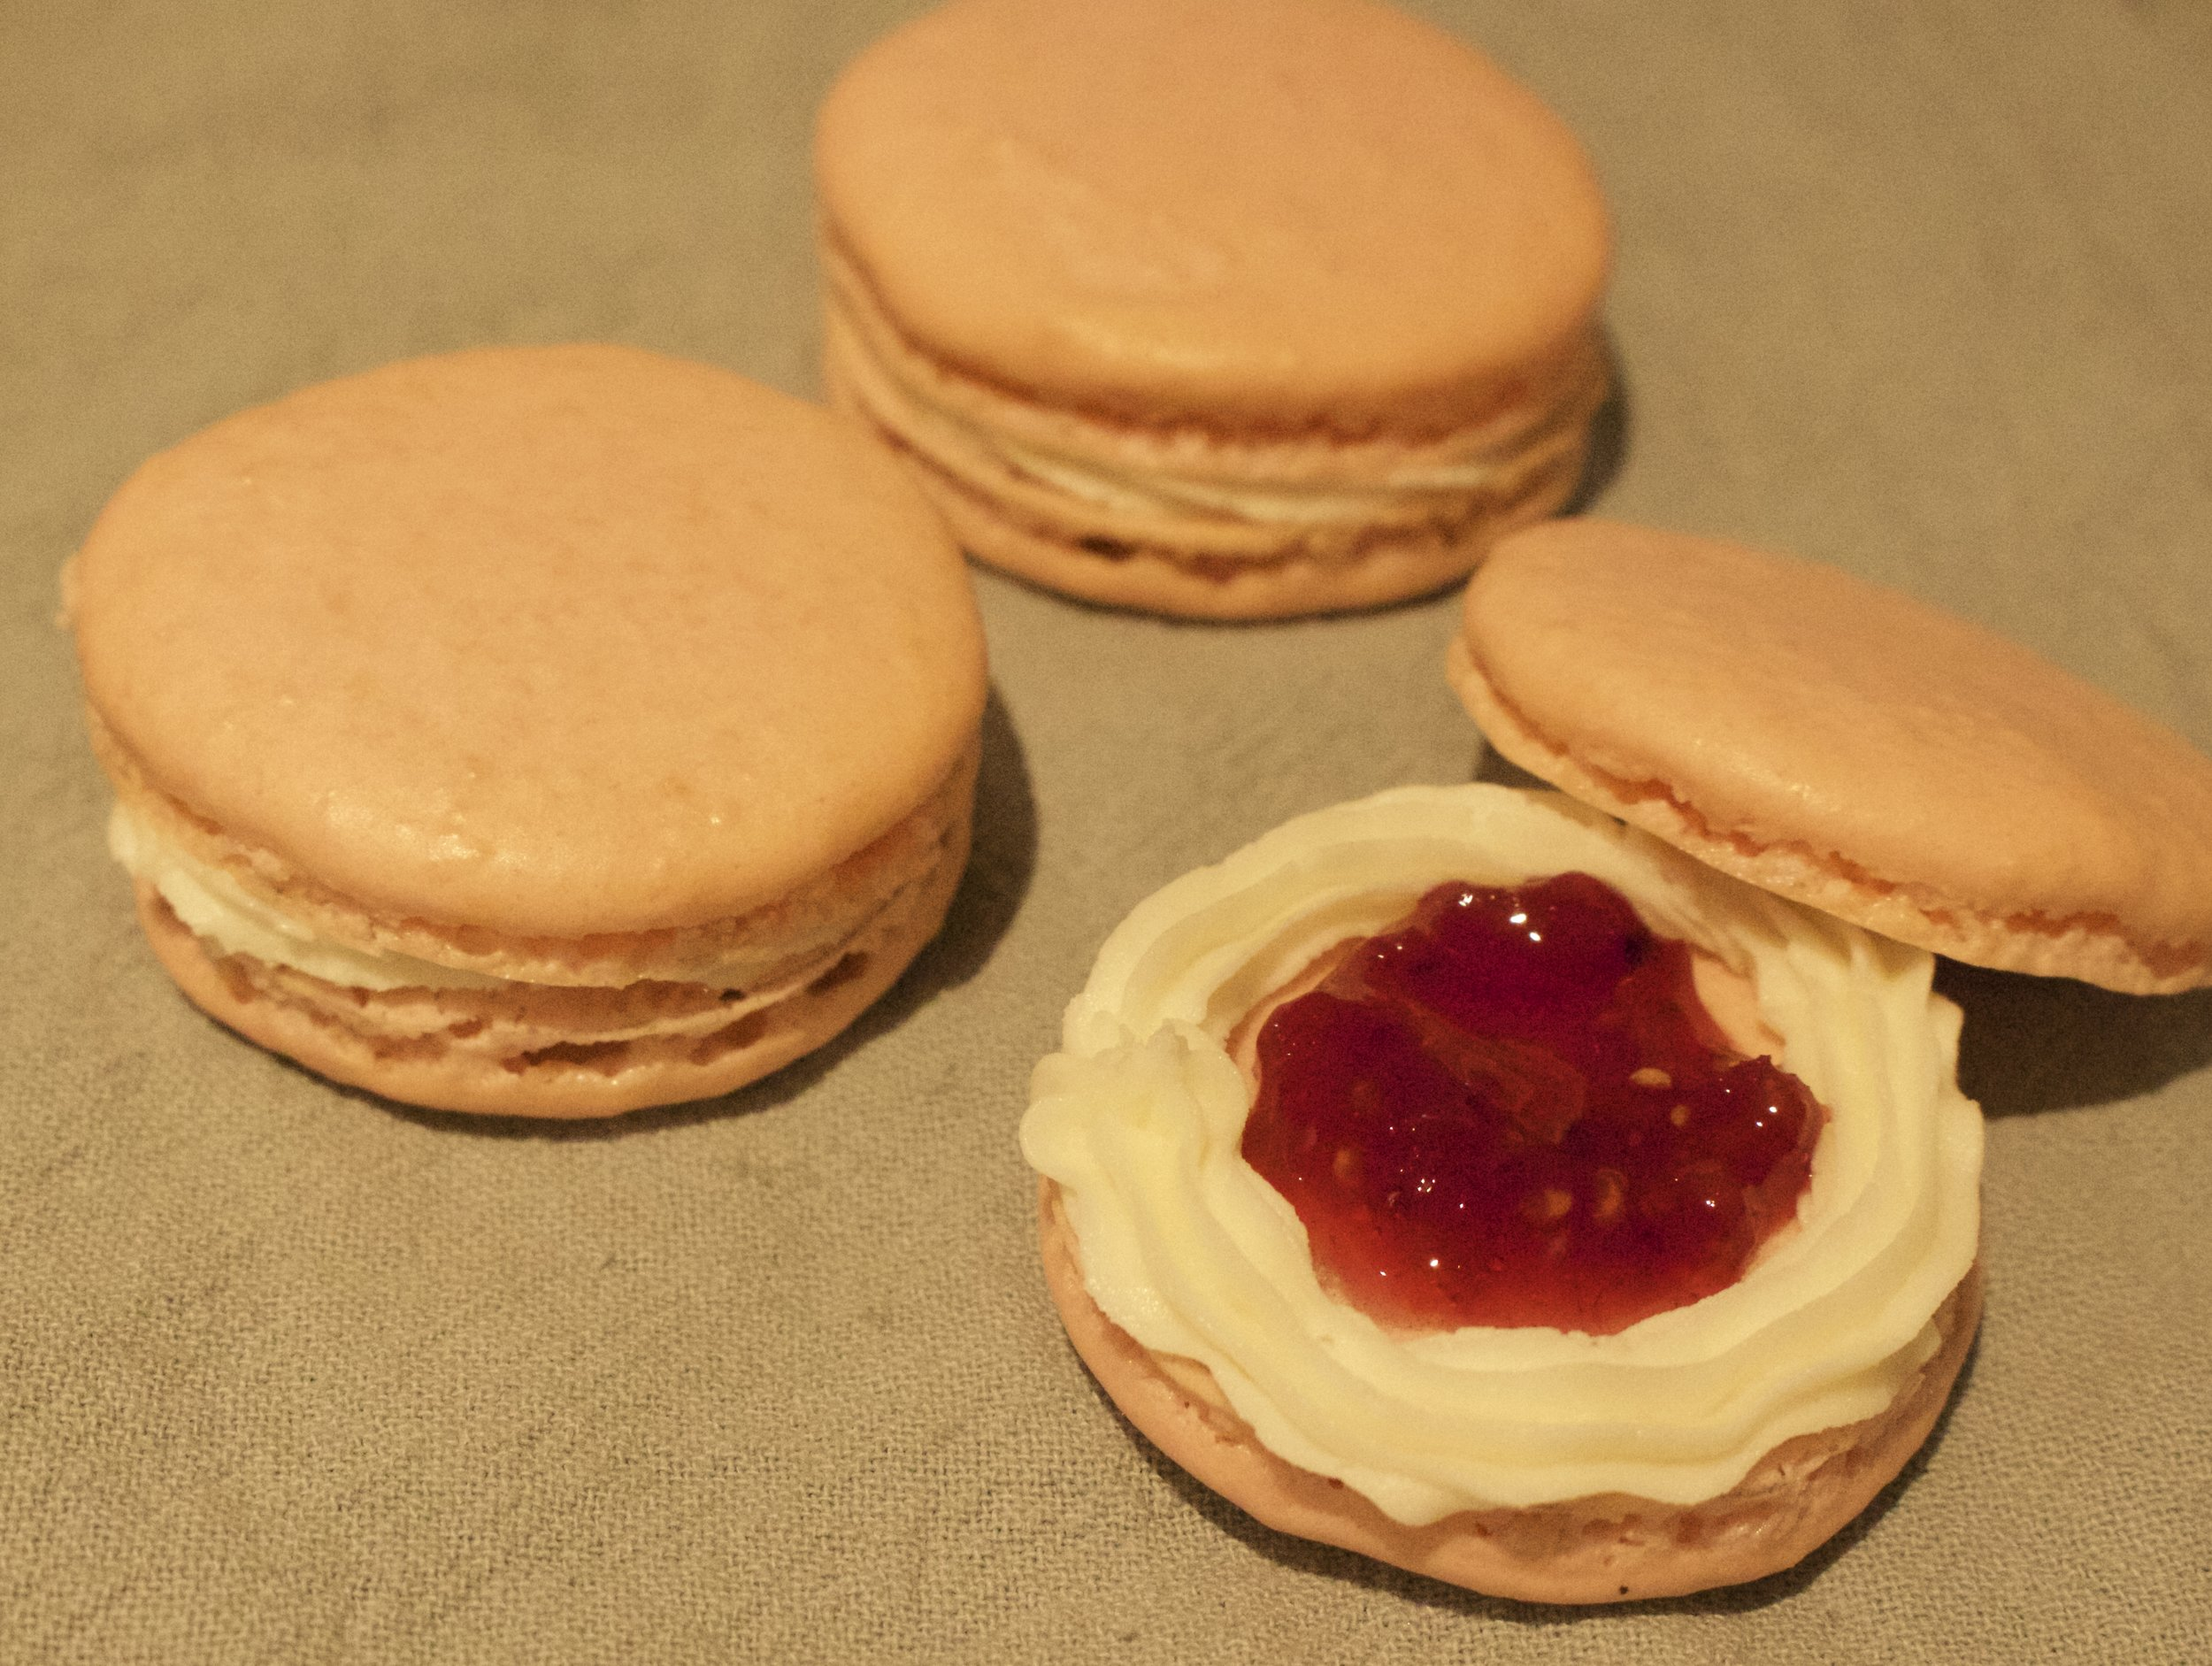 Sandwiched with vanilla buttercream and raspberry jam